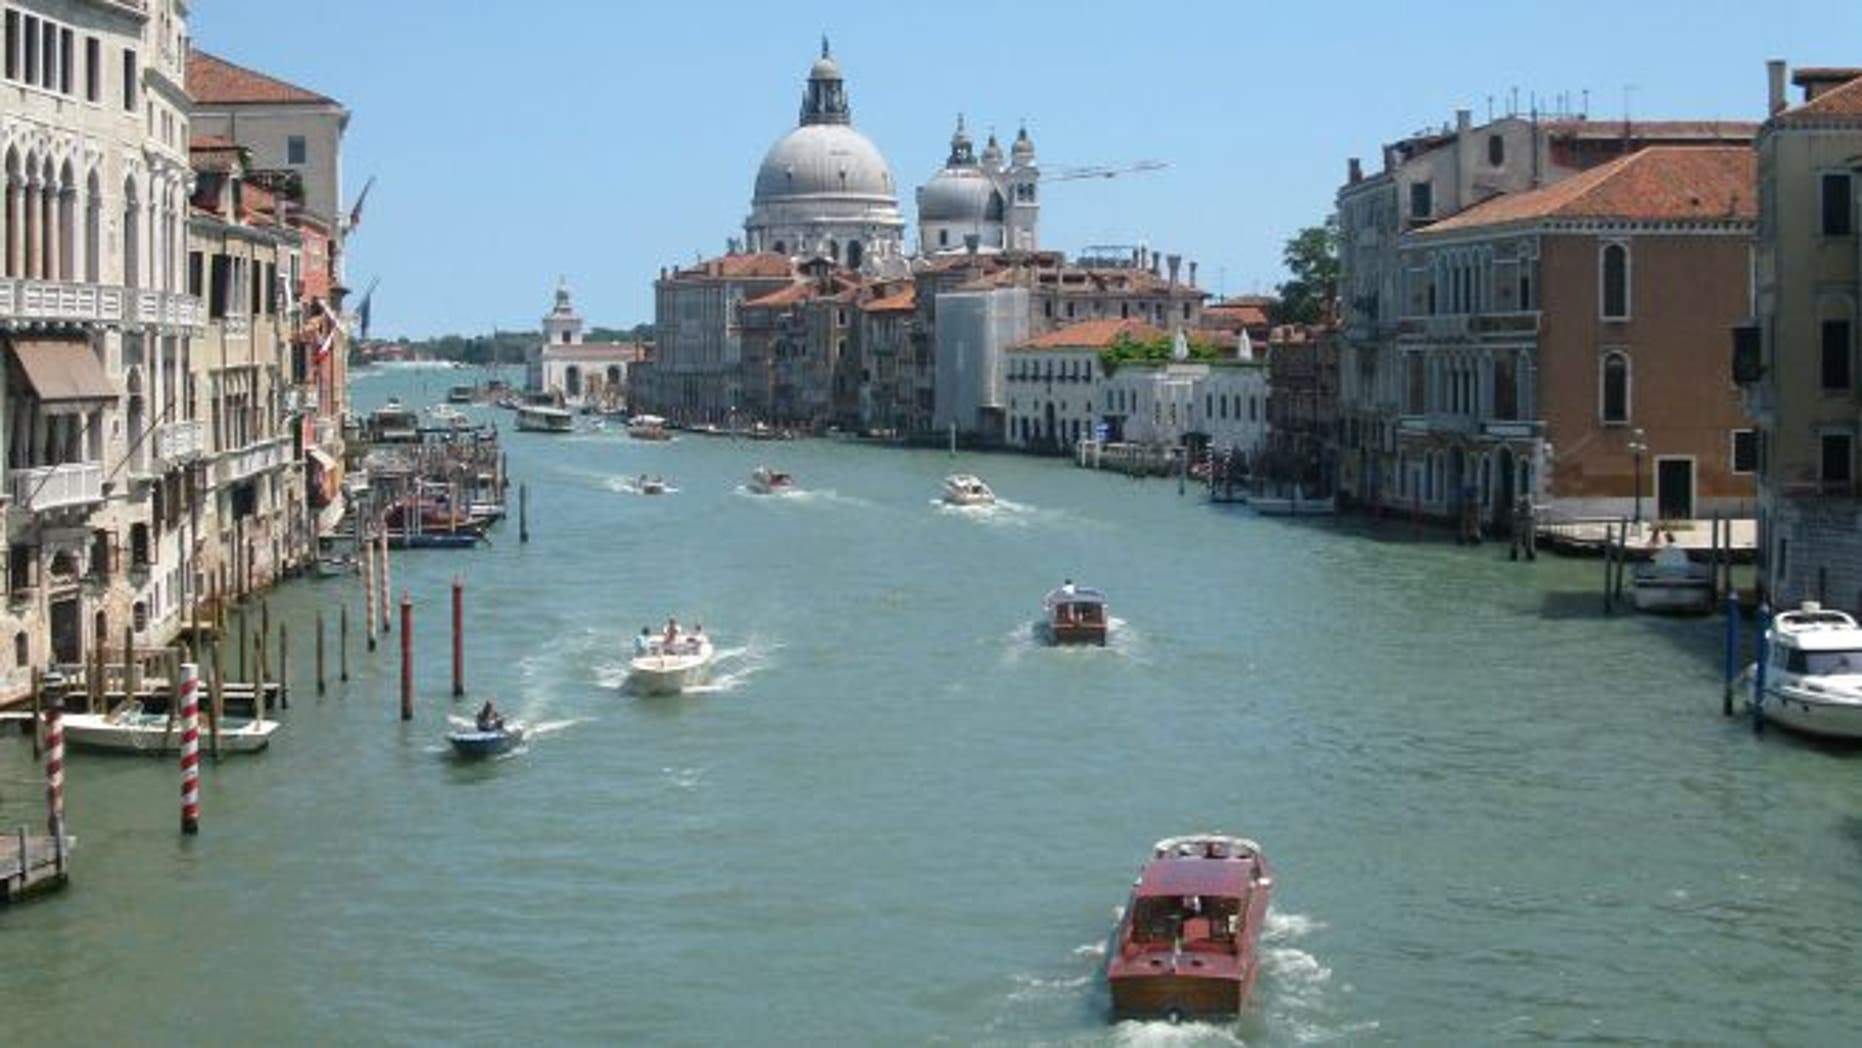 July 17, 2012: Water traffic bustling on the Grande Canale in the heart of Venice, Italy.